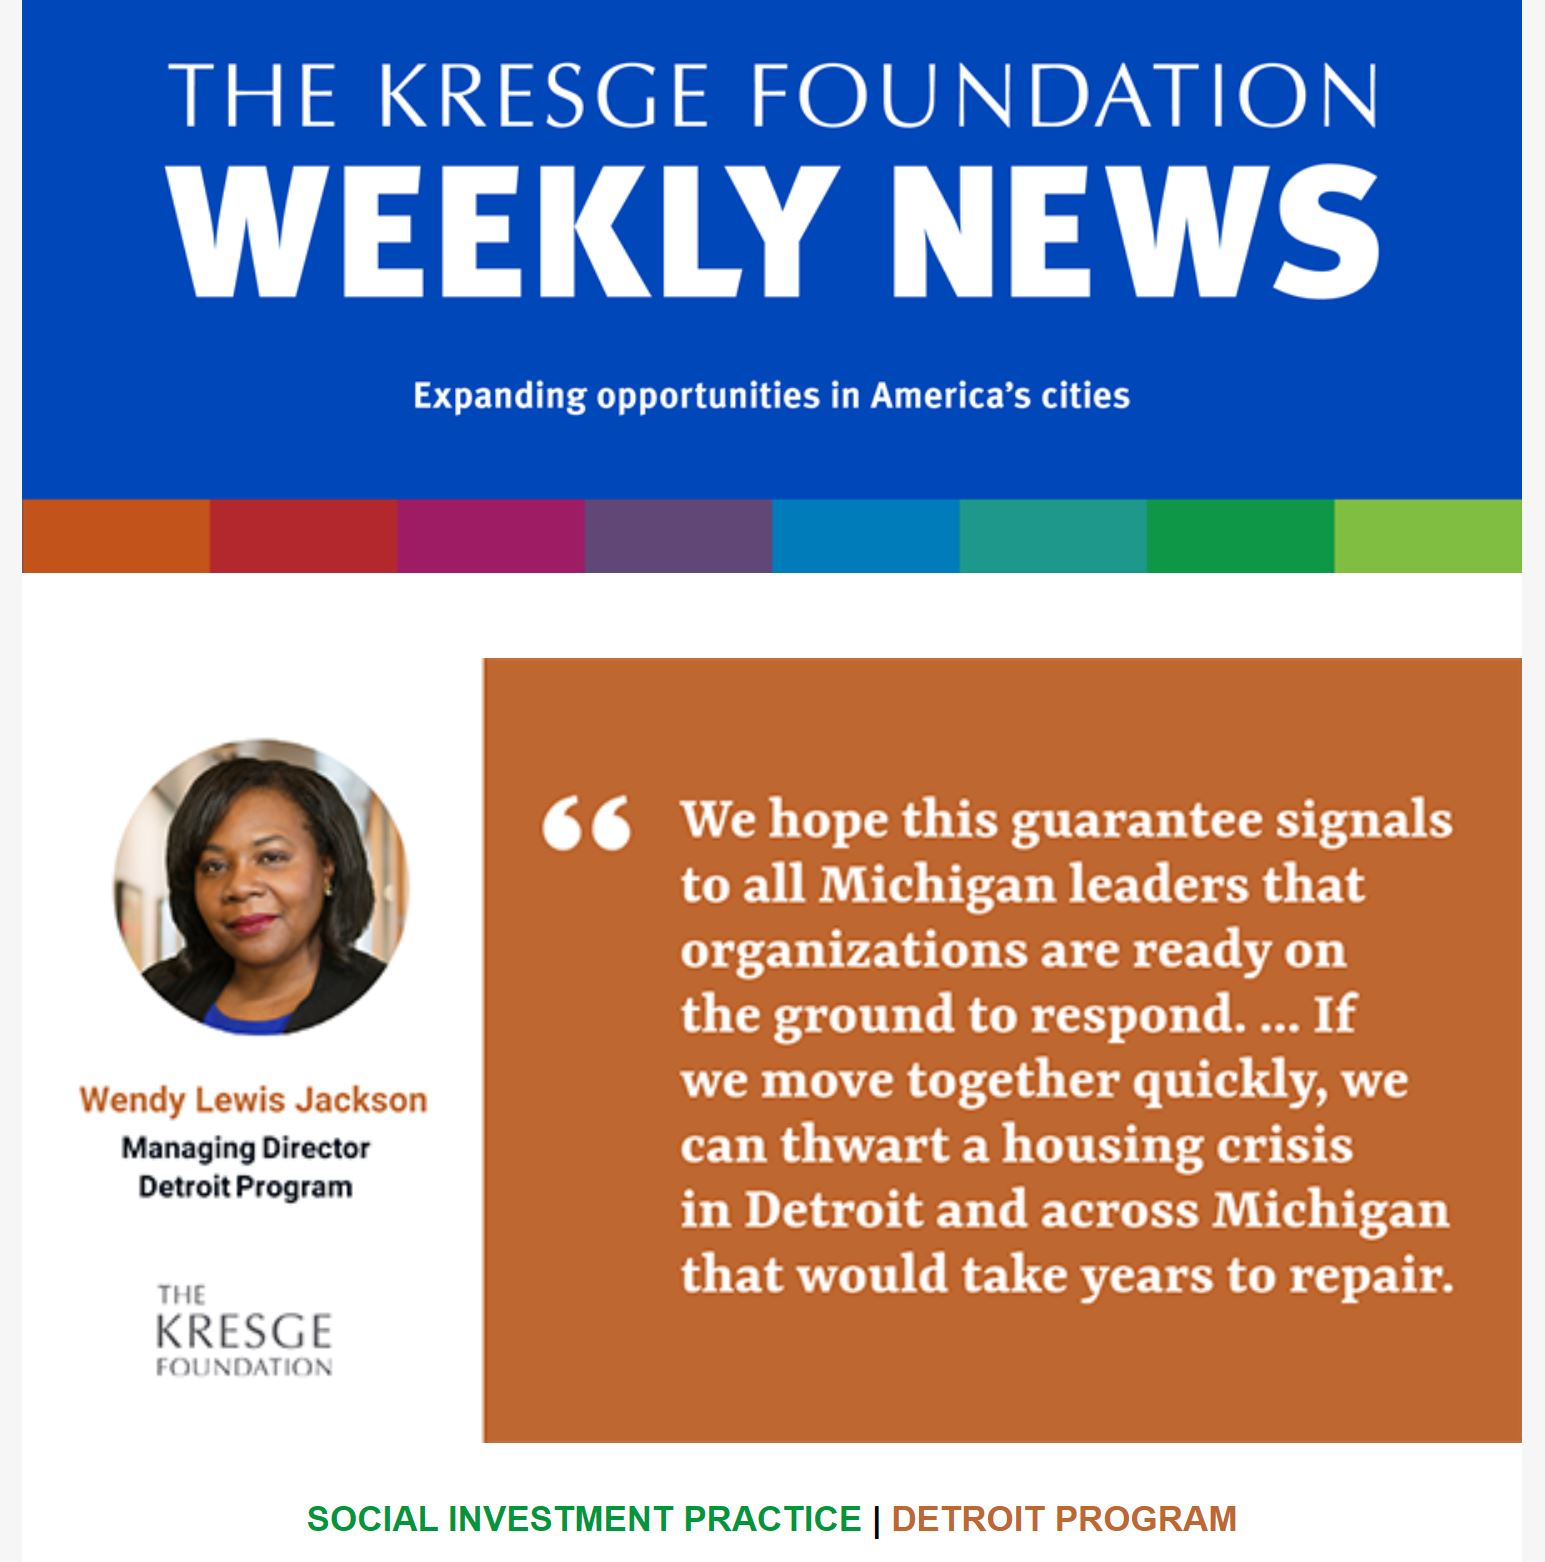 "Photo of the 3/4/2021 Kresge Foundation weekly newsletter with a graphic of a quote from Detroit Program Managing Director Wendy Lewis Jackson: ""We hope this guarantee signals to all Michigan leaders that organizations are ready on the ground to respond. ... If we move together quickly, we can thwart a housing crisis in Detroit and across Michigan that would take years to repair."""